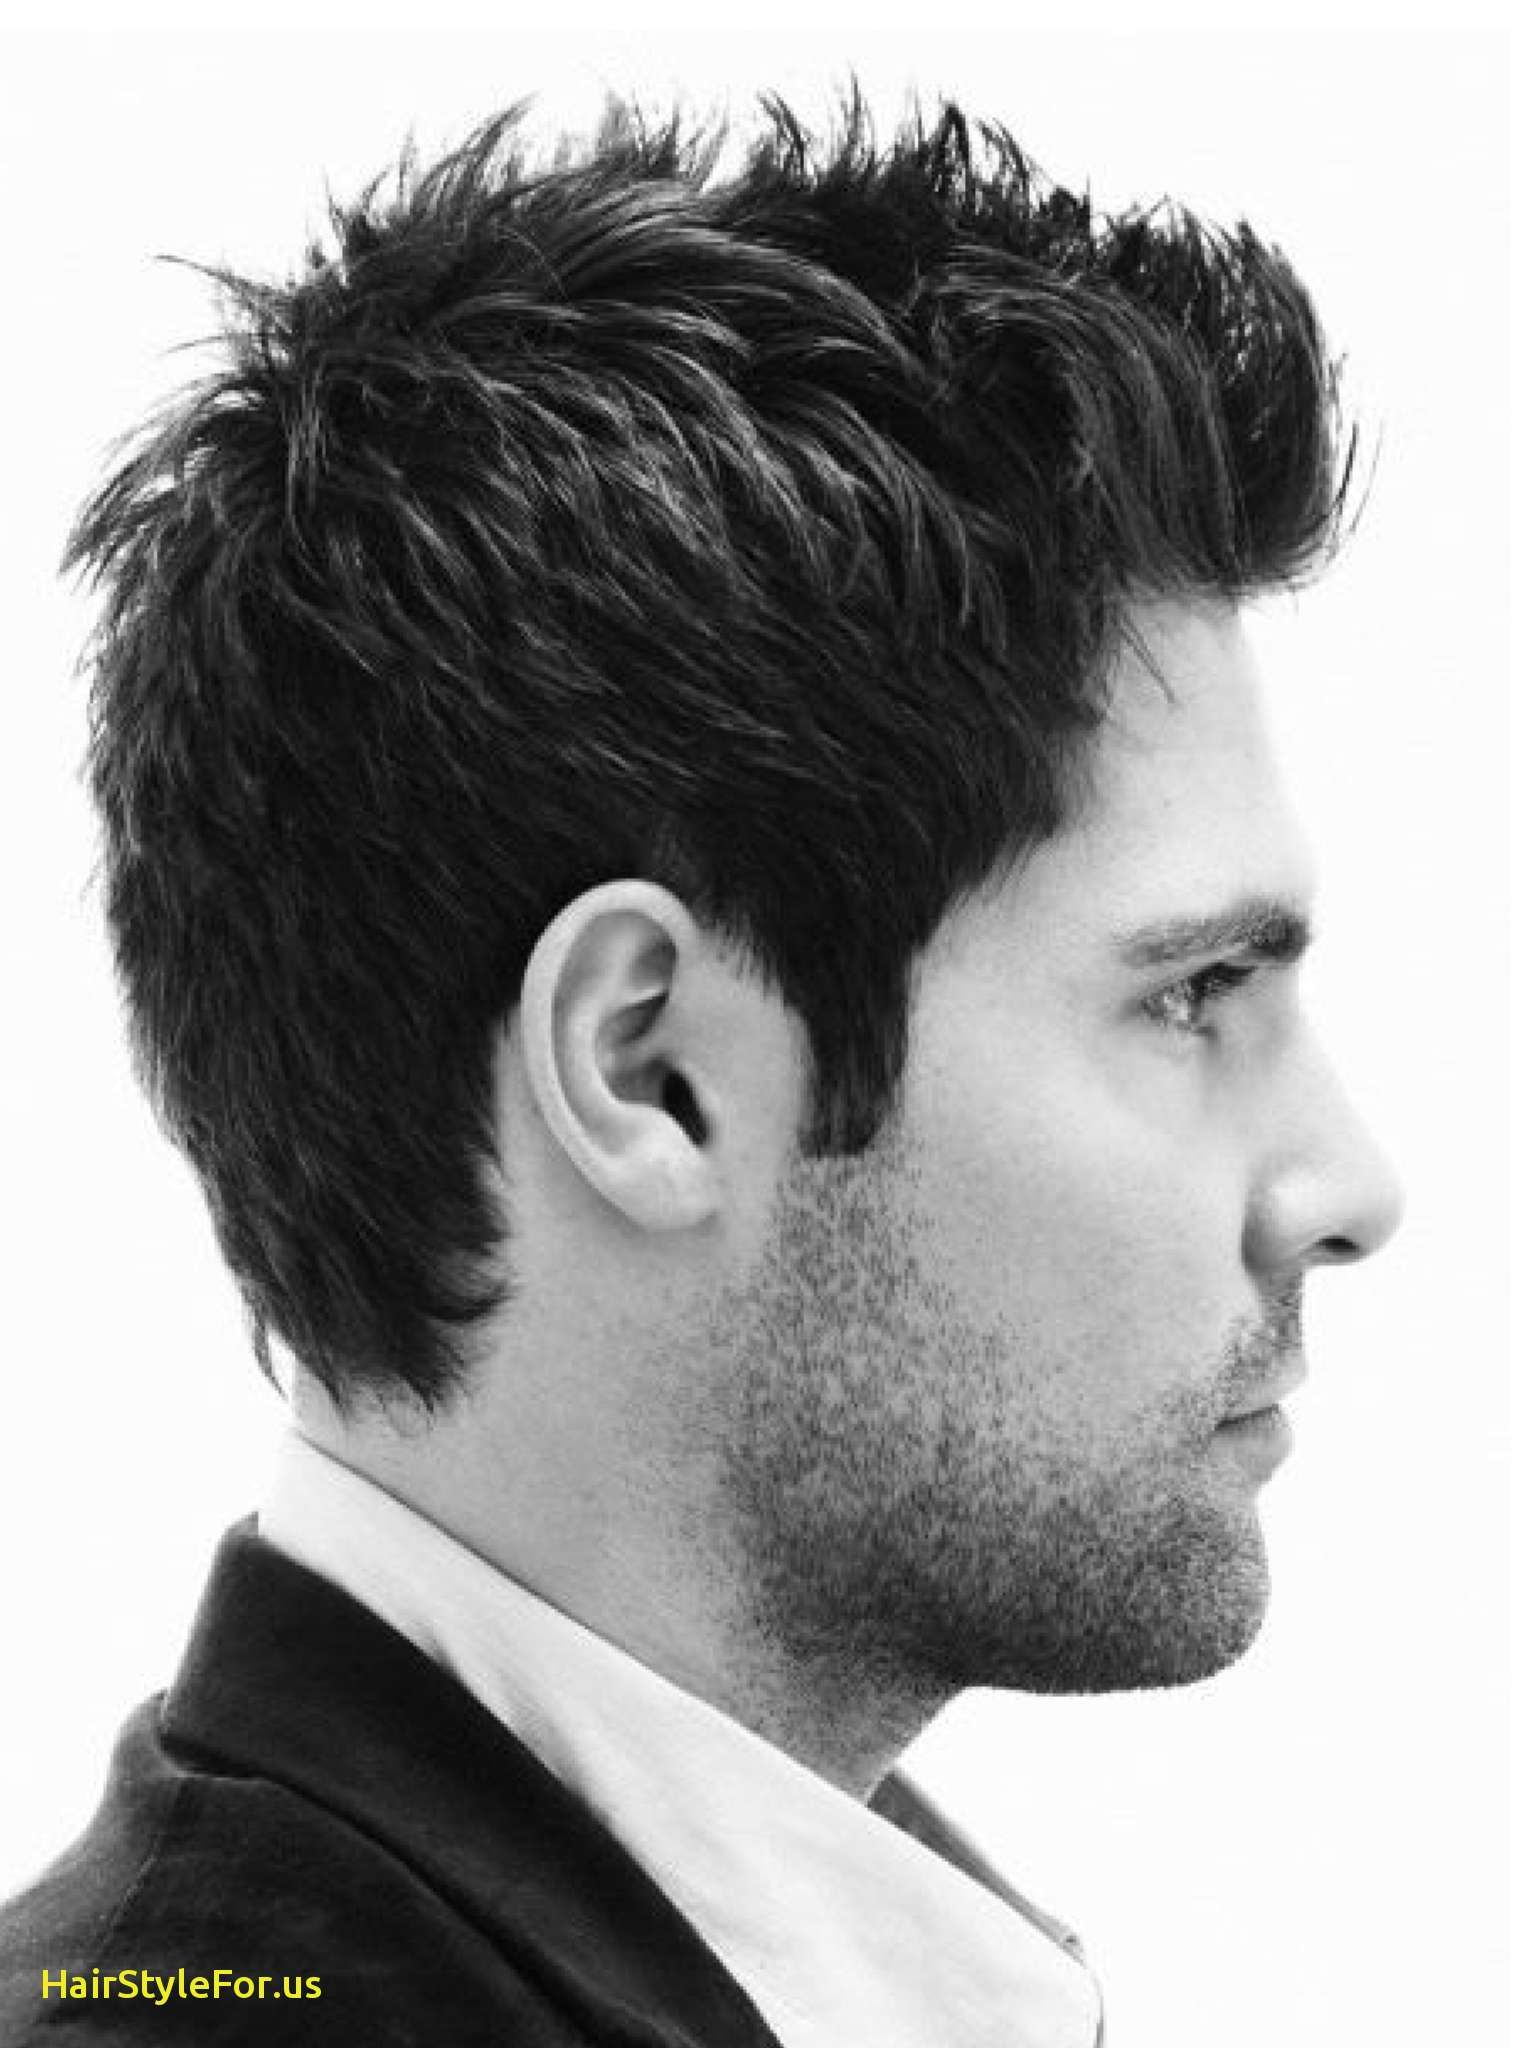 Top 20 Boys Hair Cutting Style Images Rose Schneider Top 20 Boys